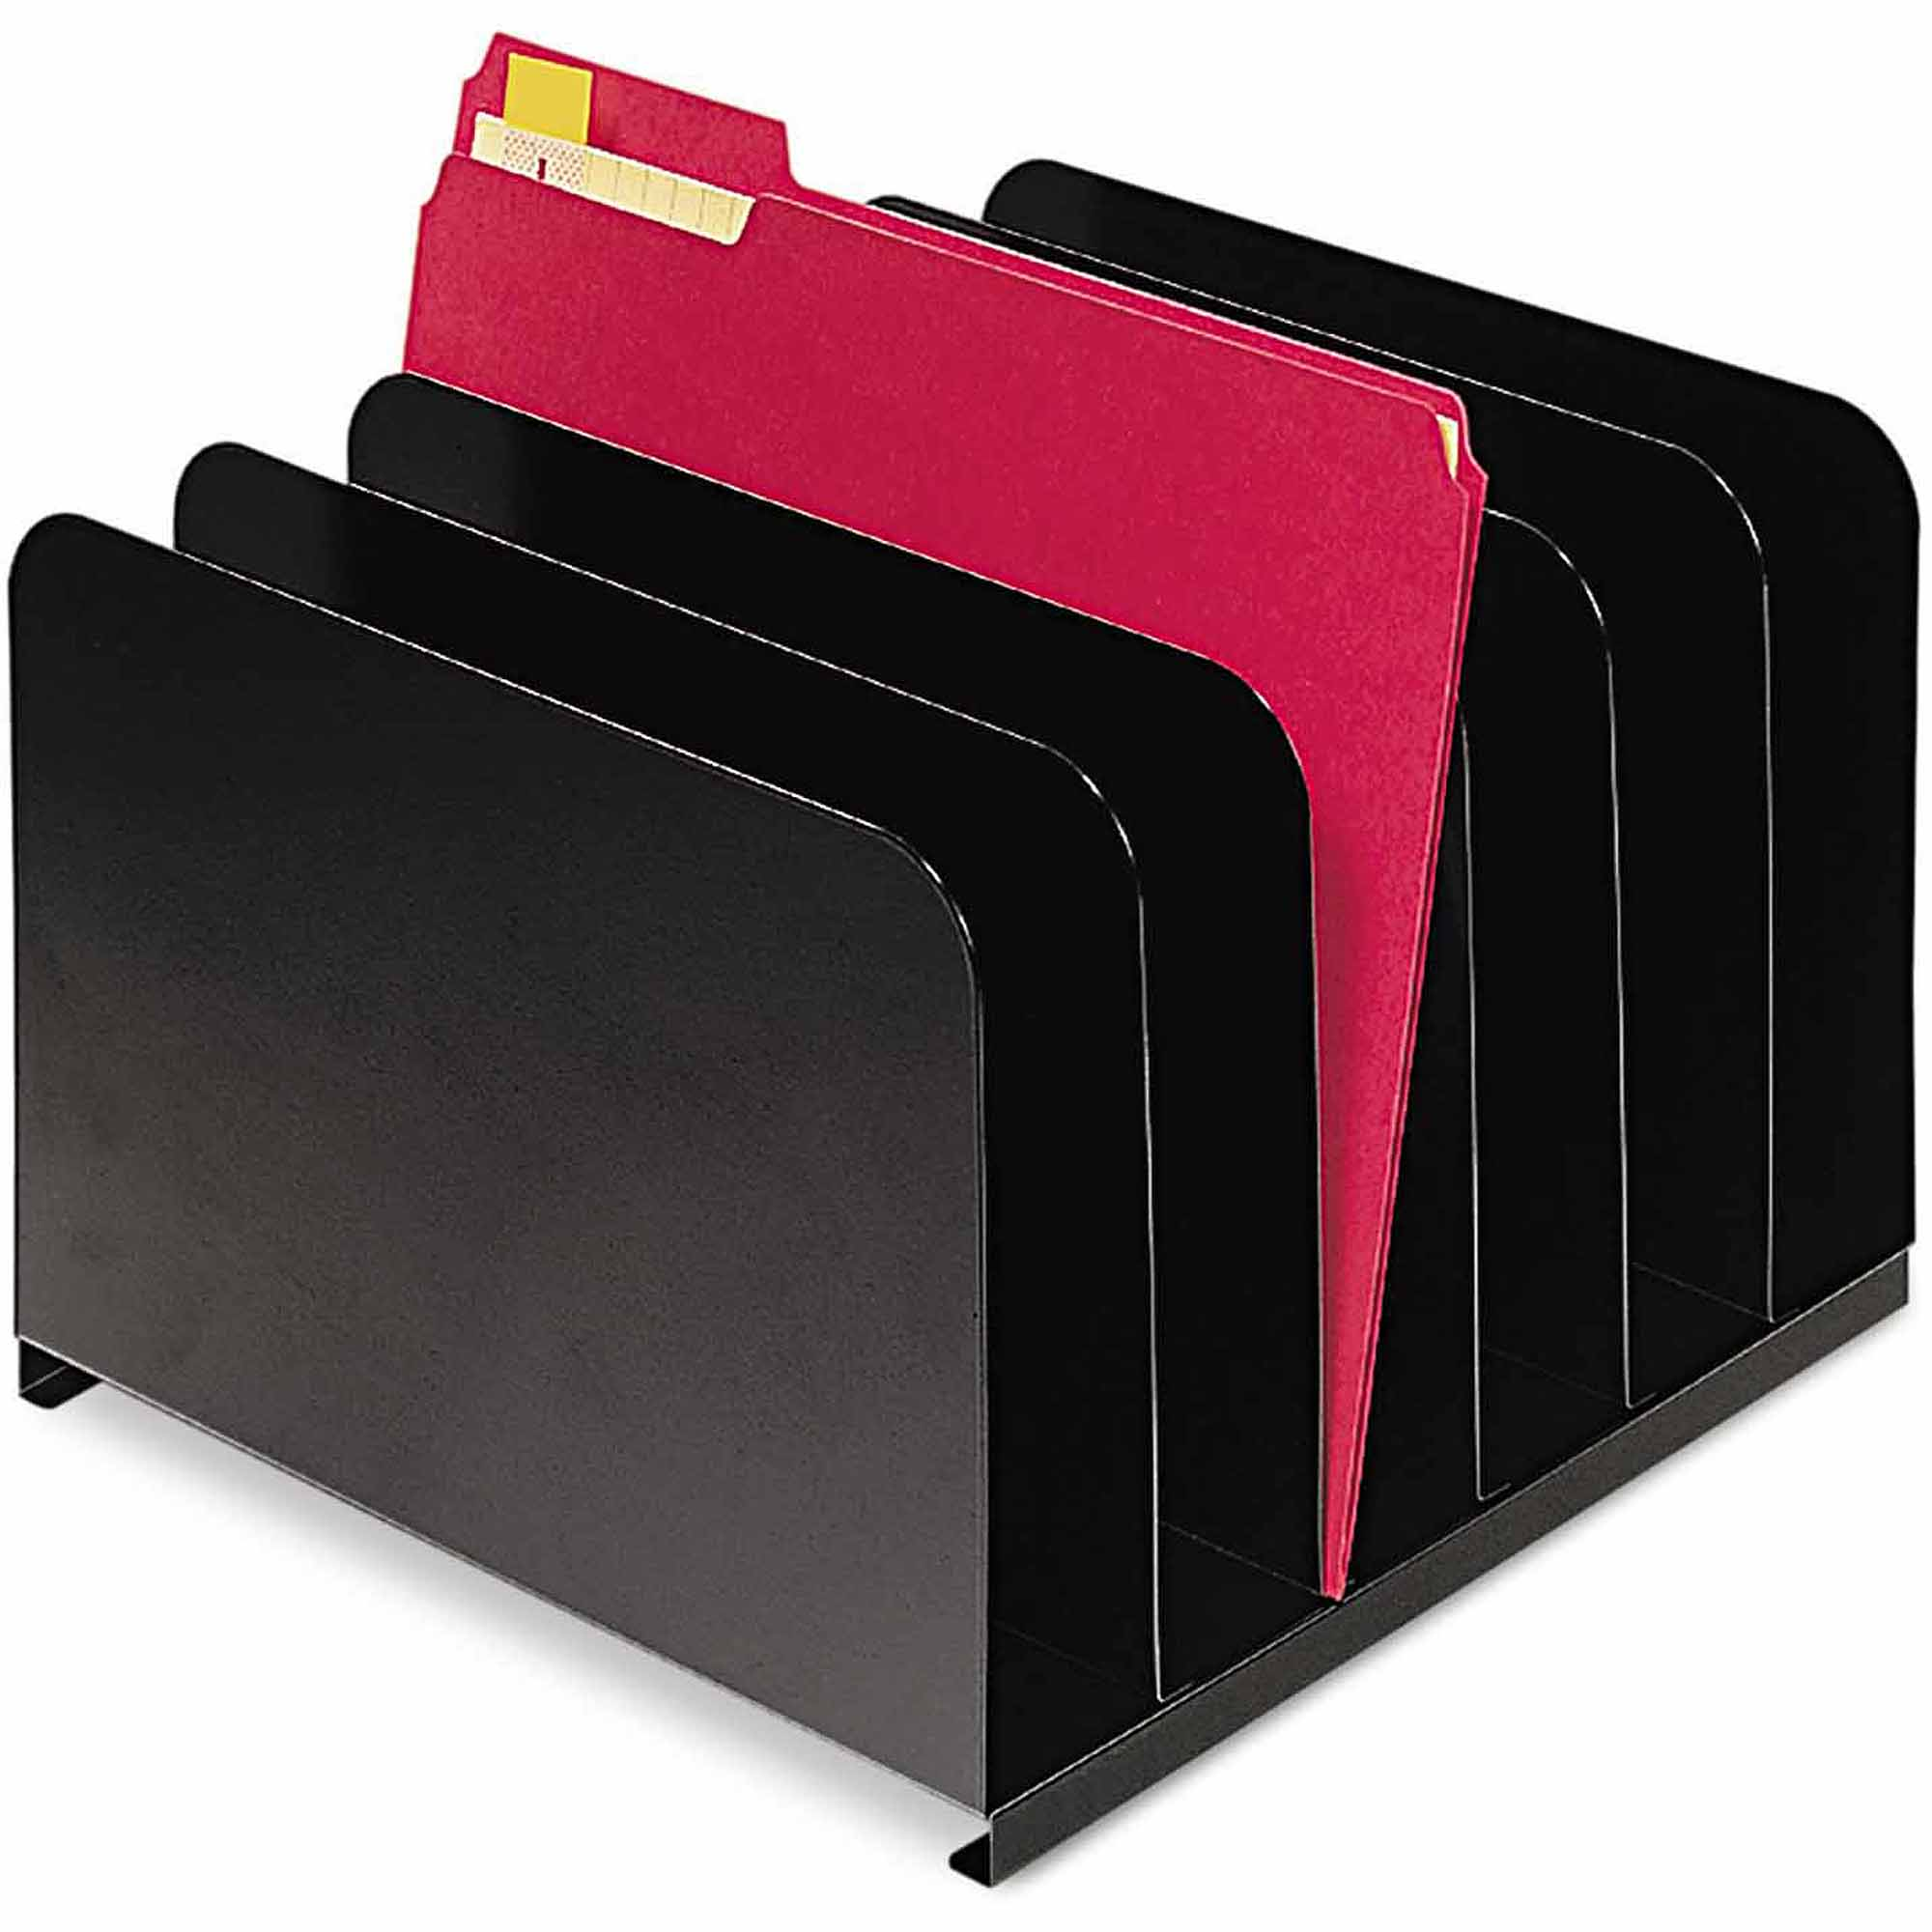 "SteelMaster Desktop Vertical Organizer, 6 Sections, Steel, 12"" x 11"" x 8-1/8"", Black"